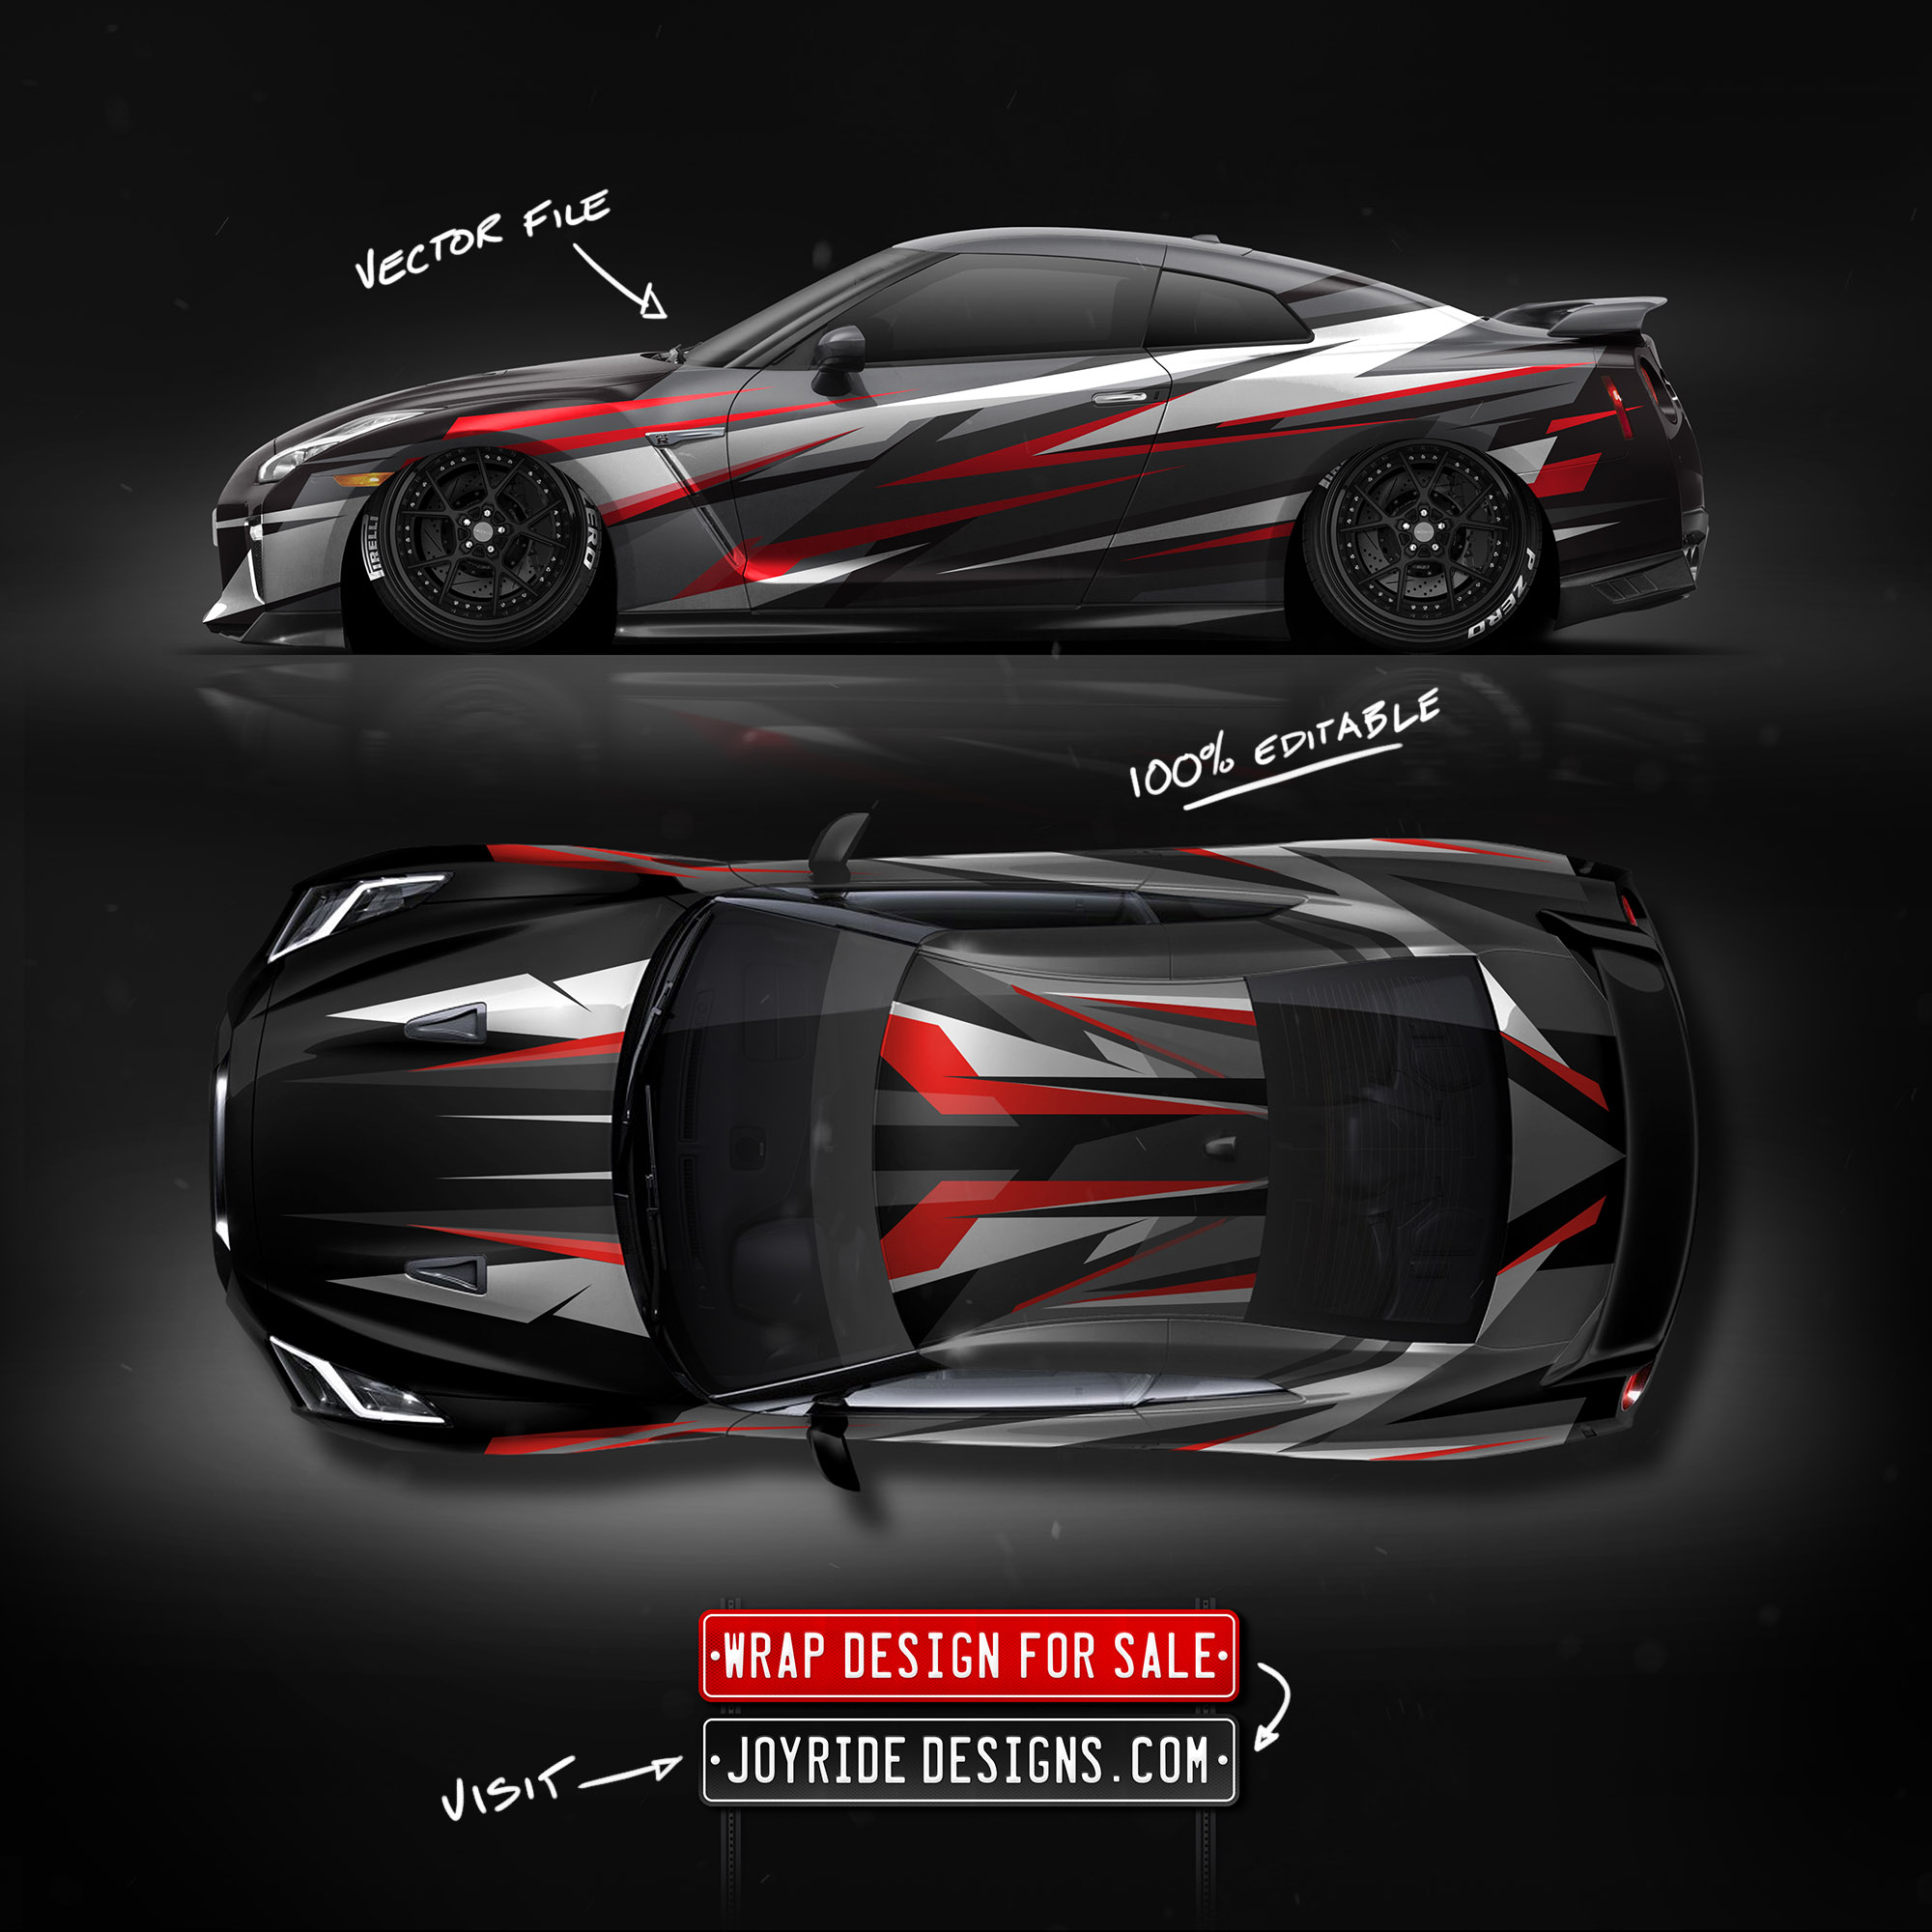 NISSAN GTR SIDE AND TOP JOYRIDE WRAP DESIGN JD4